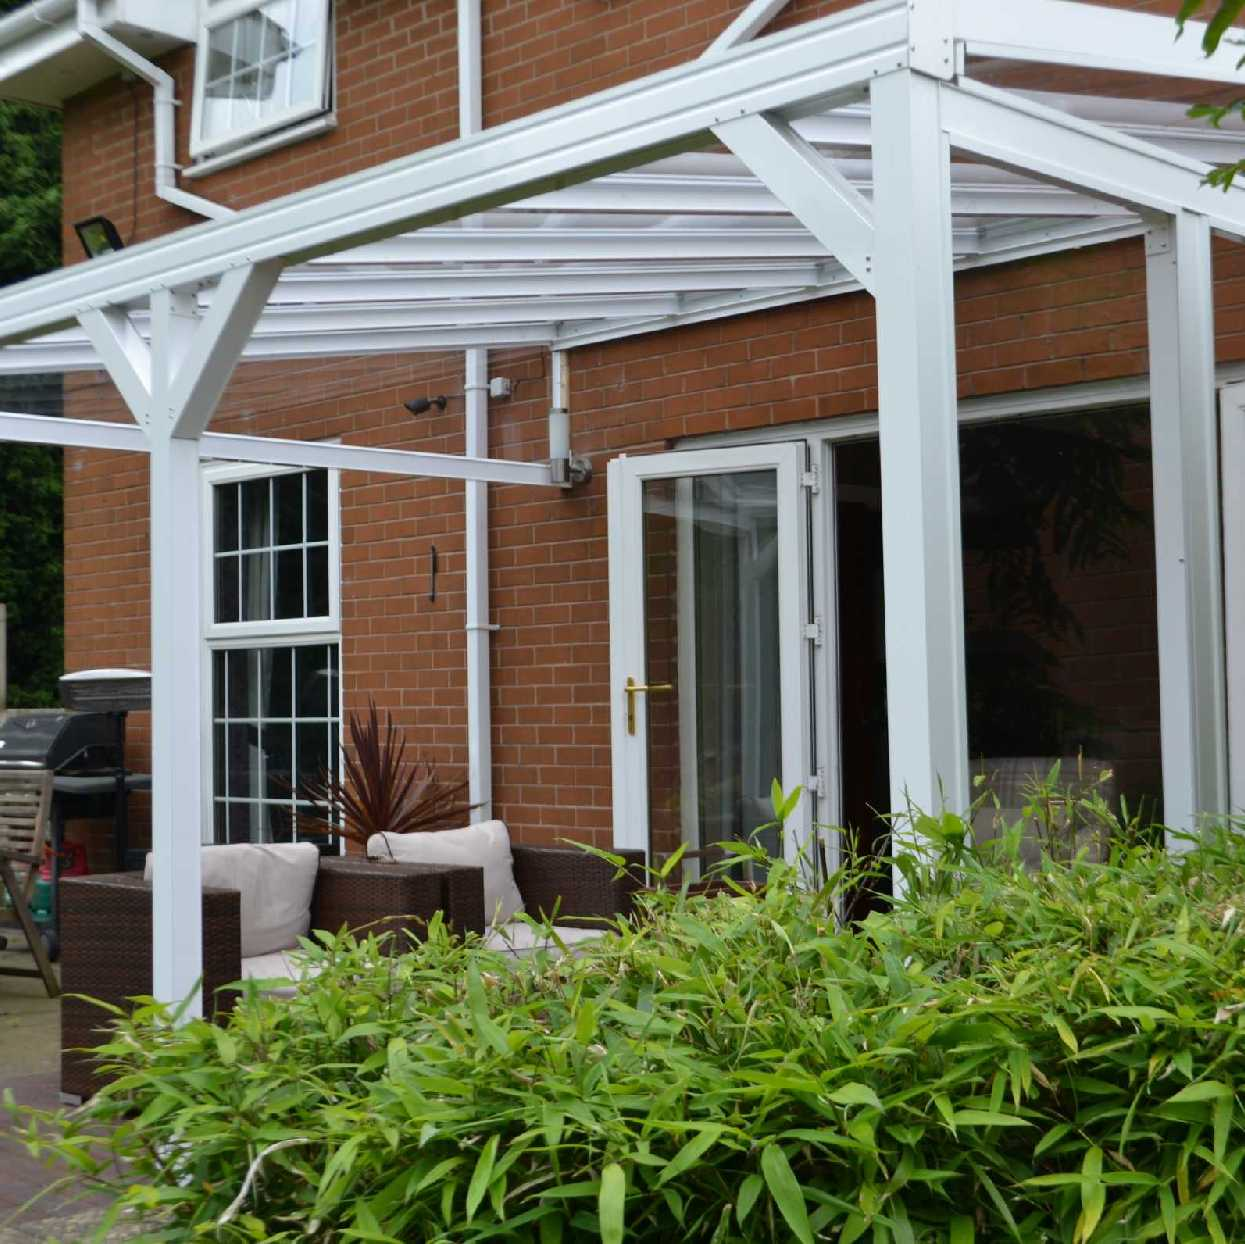 Omega Smart White Lean-To Canopy with 6mm Glass Clear Plate Polycarbonate Glazing - 10.5m (W) x 1.5m (P), (5) Supporting Posts from Omega Build